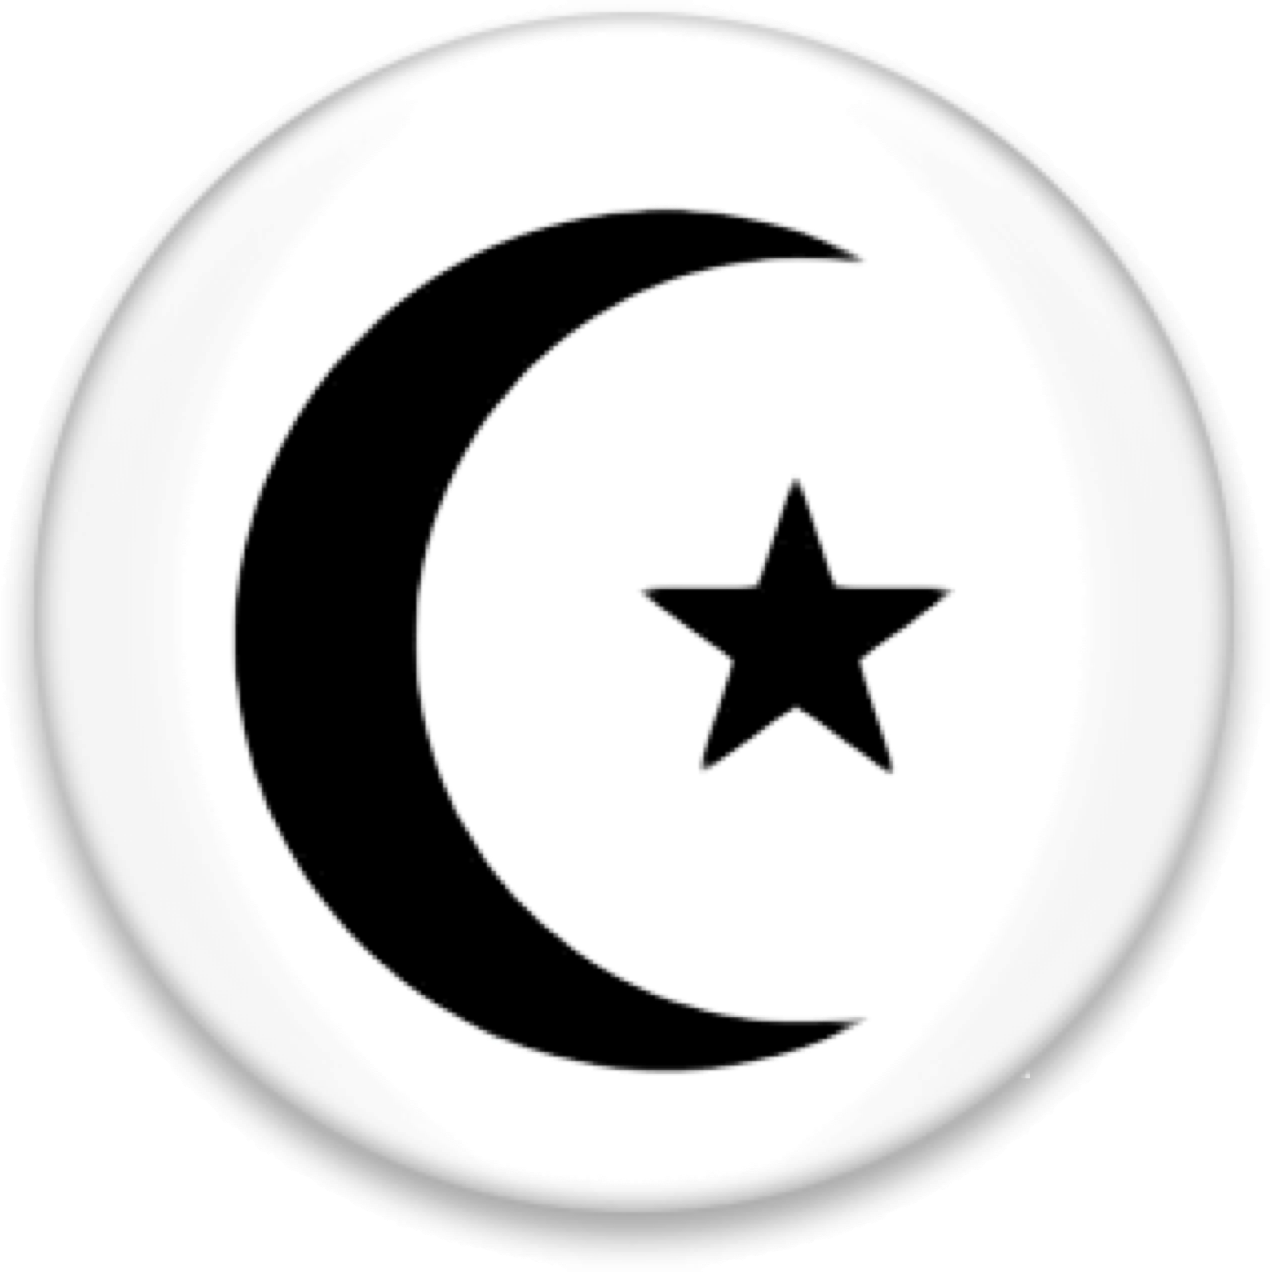 black crescent moon and star representing the celebration of Ramadan